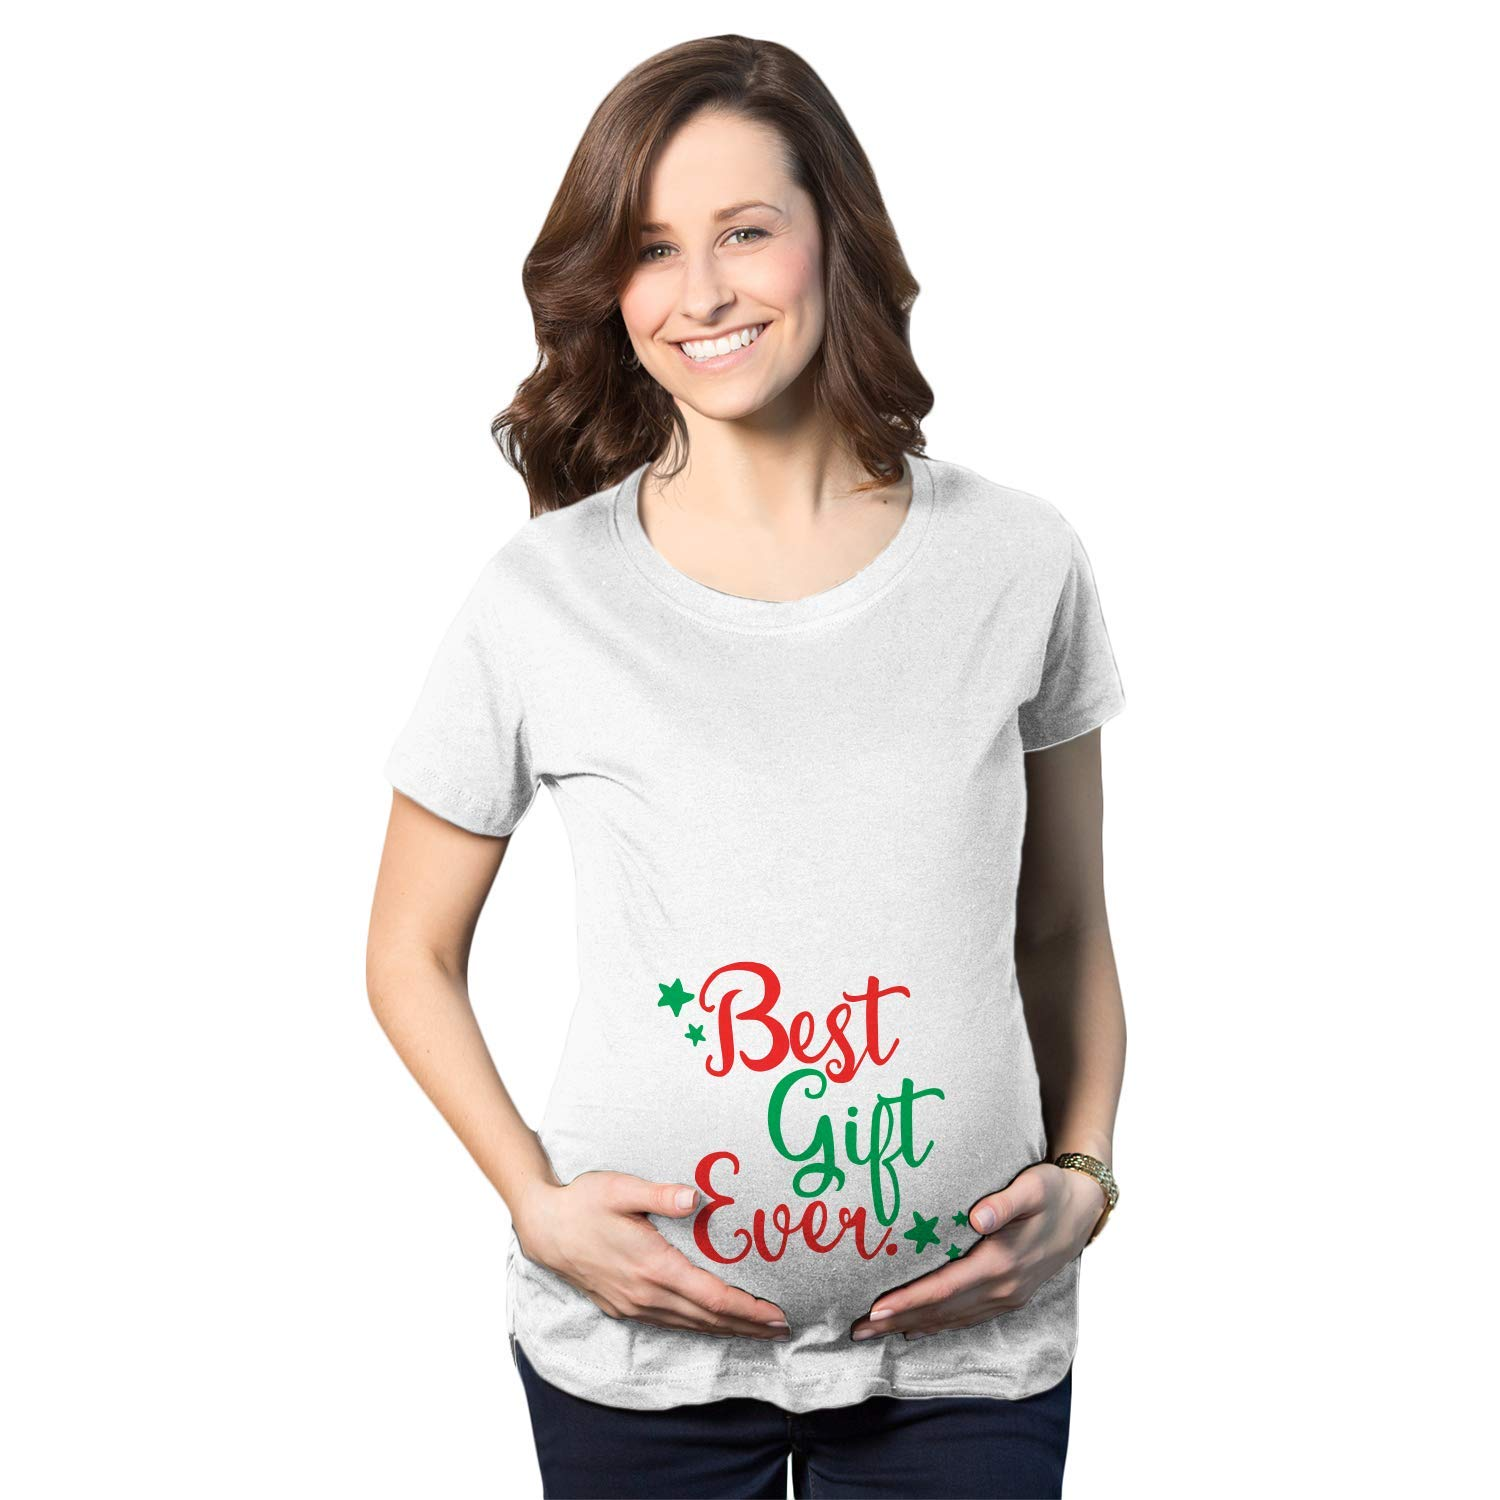 dd37d3c29 Amazon.com: Maternity Best Gift Ever T Shirt Funny Present Bump Pregnancy  Tee for Women: Clothing